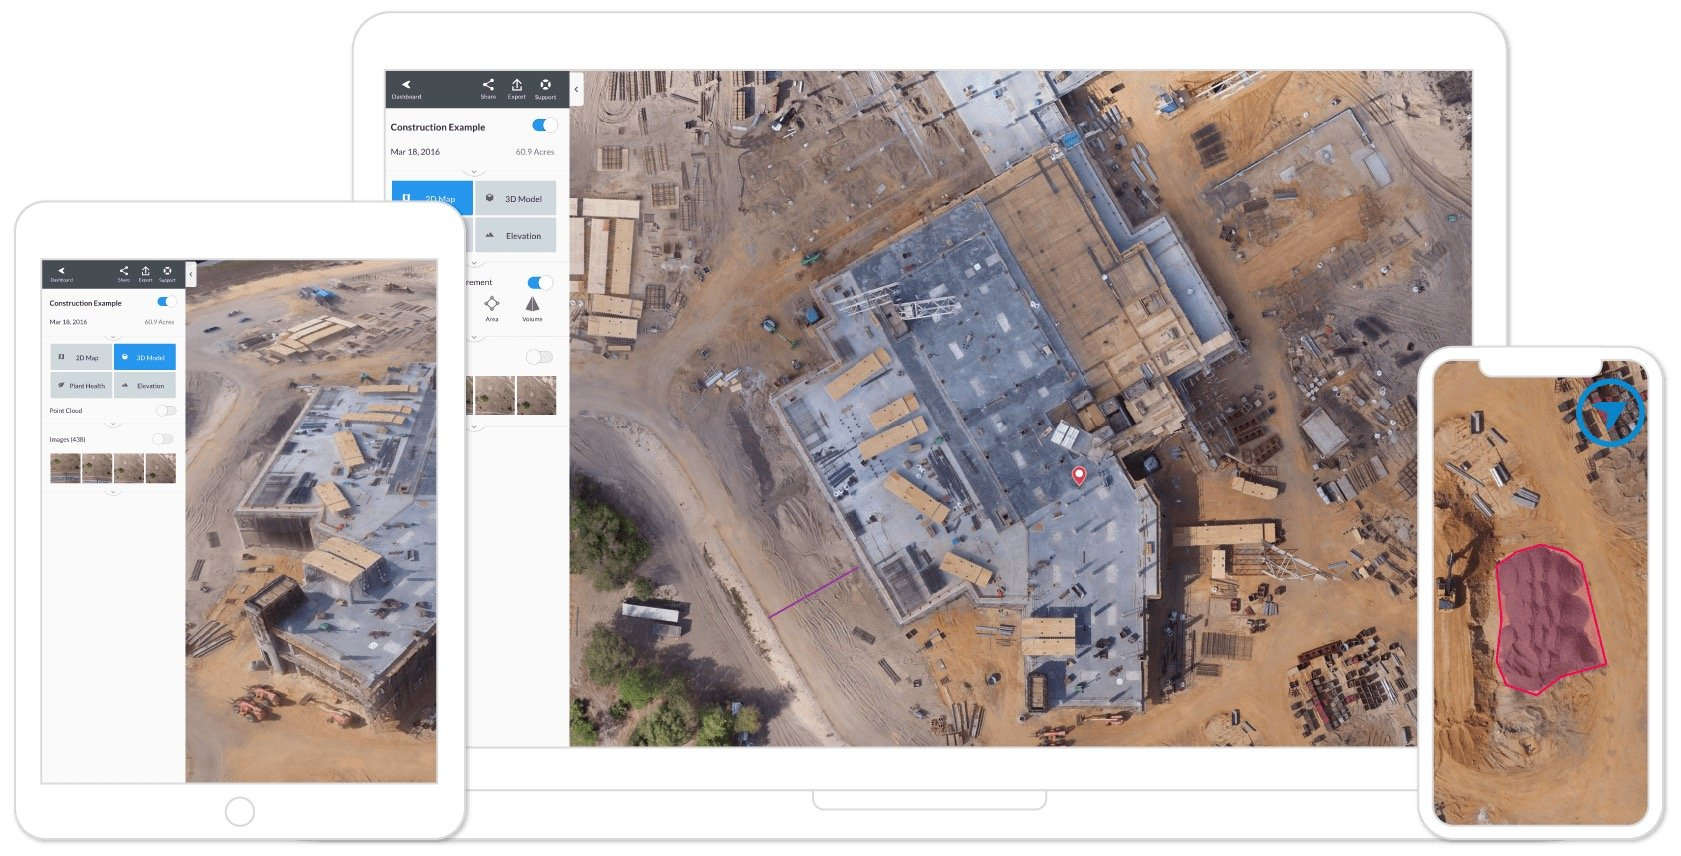 16 Best Photogrammetry Software Tools in 2019 (6 are Free) | All3DP